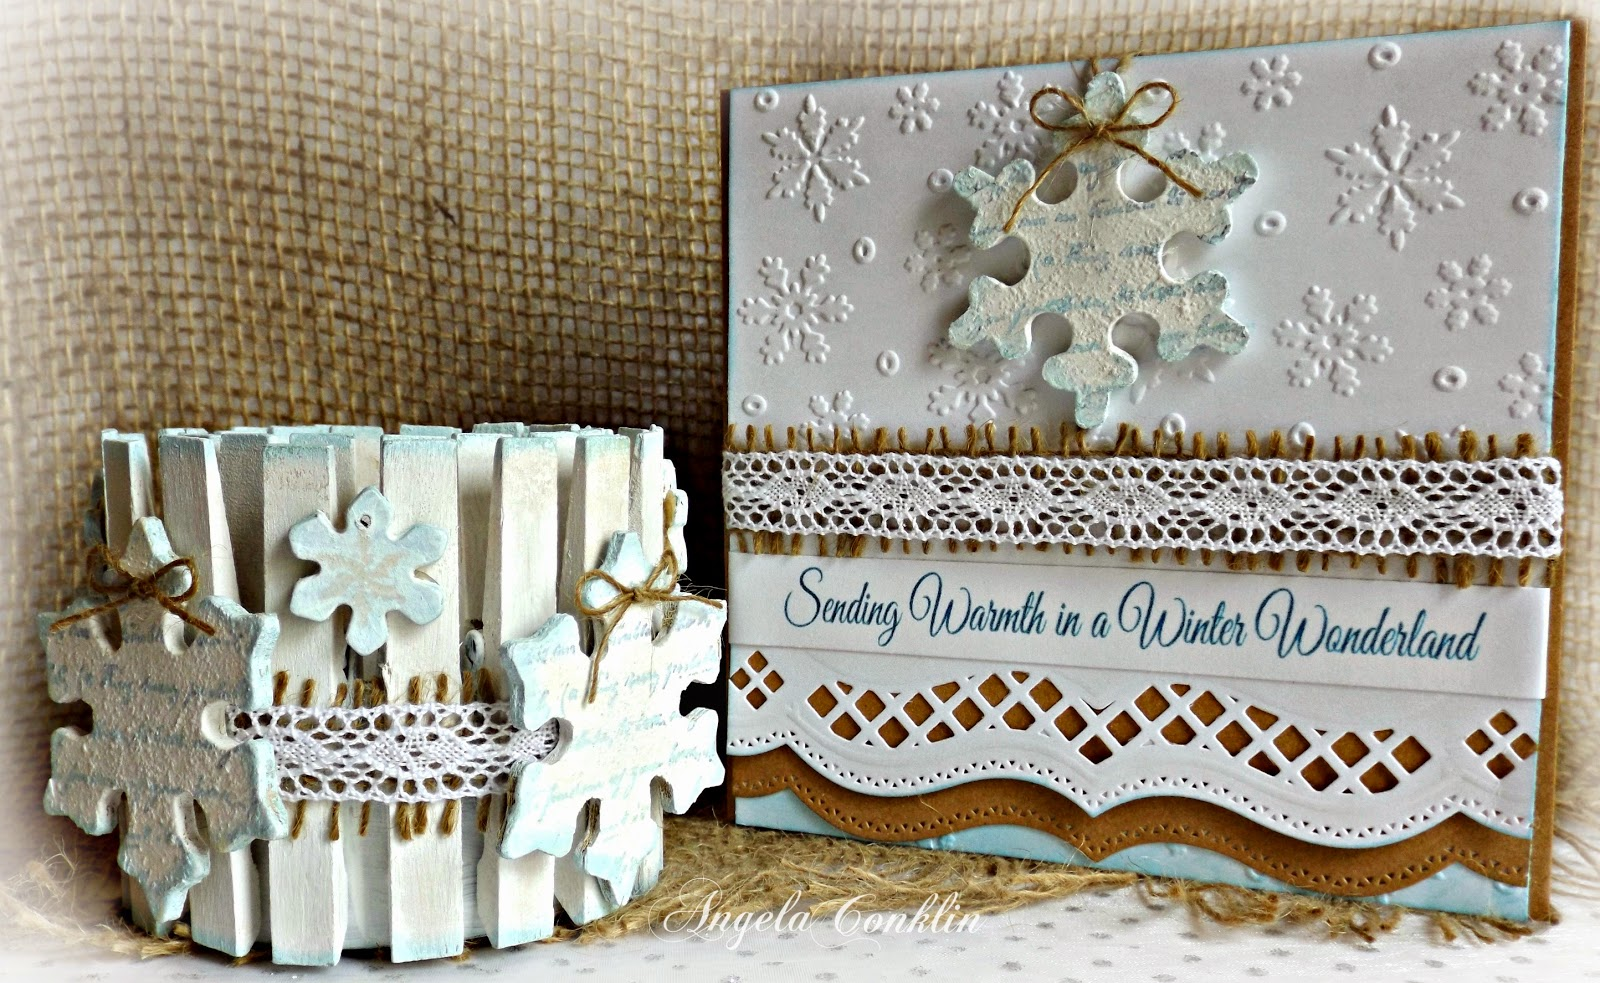 Repurposed Can - Winter Wonderland Tree Ornament Card and Clothespin Candle Gift Set